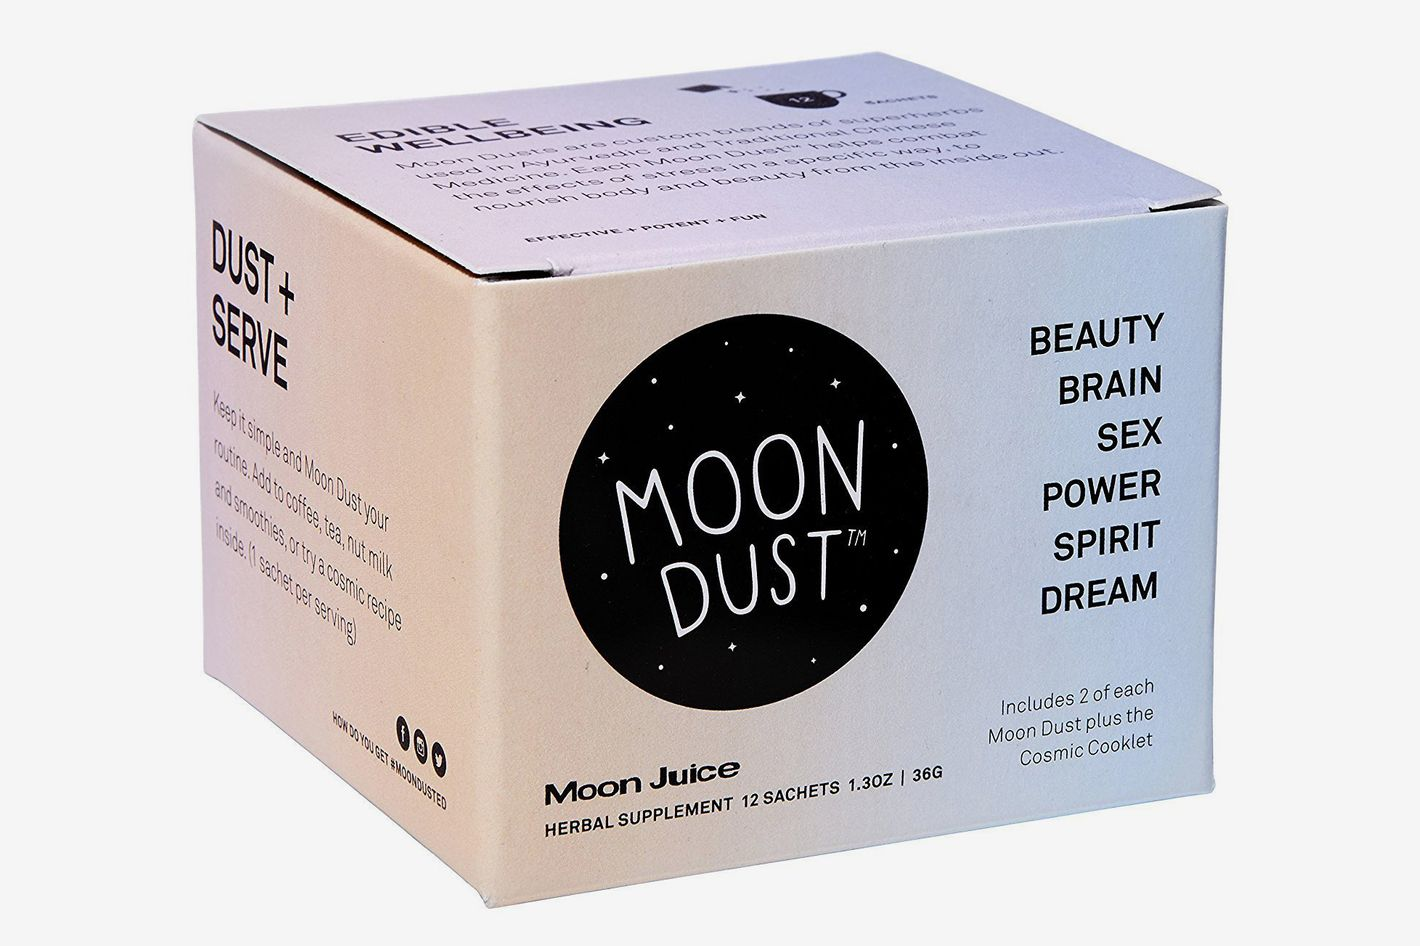 Moon Juice — Organic + Wildcrafted Full Moon Dust Sampler Box